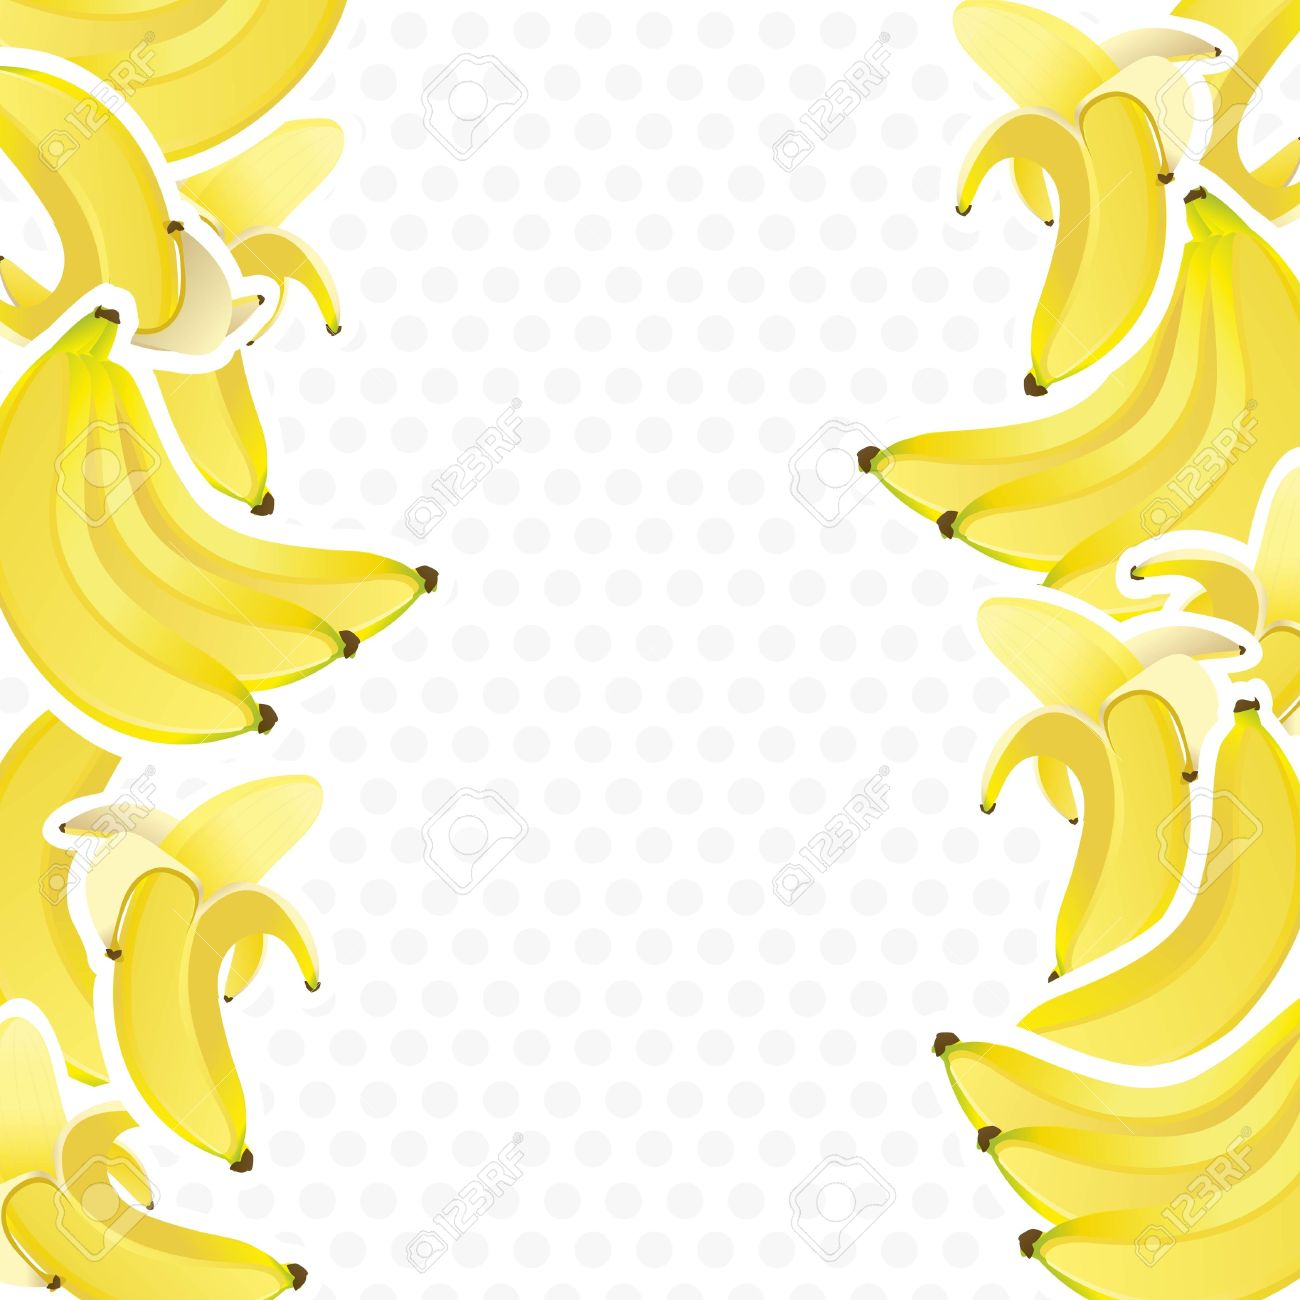 Background on wallpaperget com. Banana clipart border